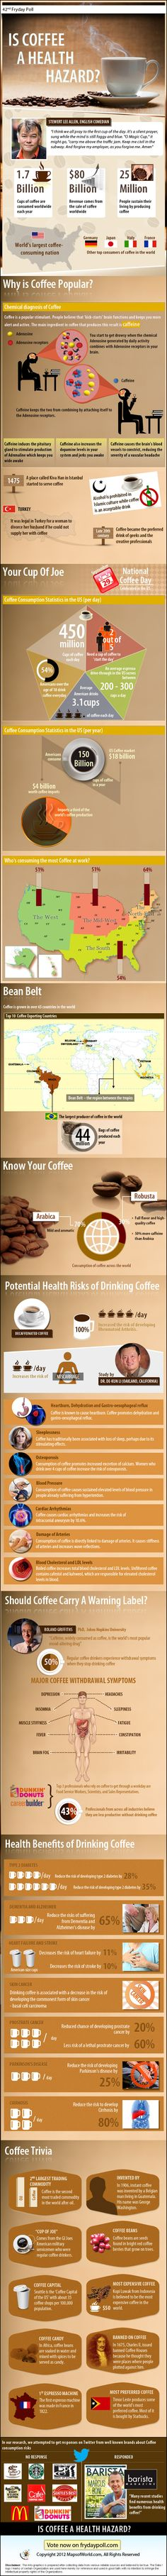 38 Best Coffee Fun Facts Images On Pinterest Graphics Kopi Arabika Solong Aceh By Viziq Nad So I Love And Have Many Cups In The Morning To Jump Start My Day Is A Health Hazard